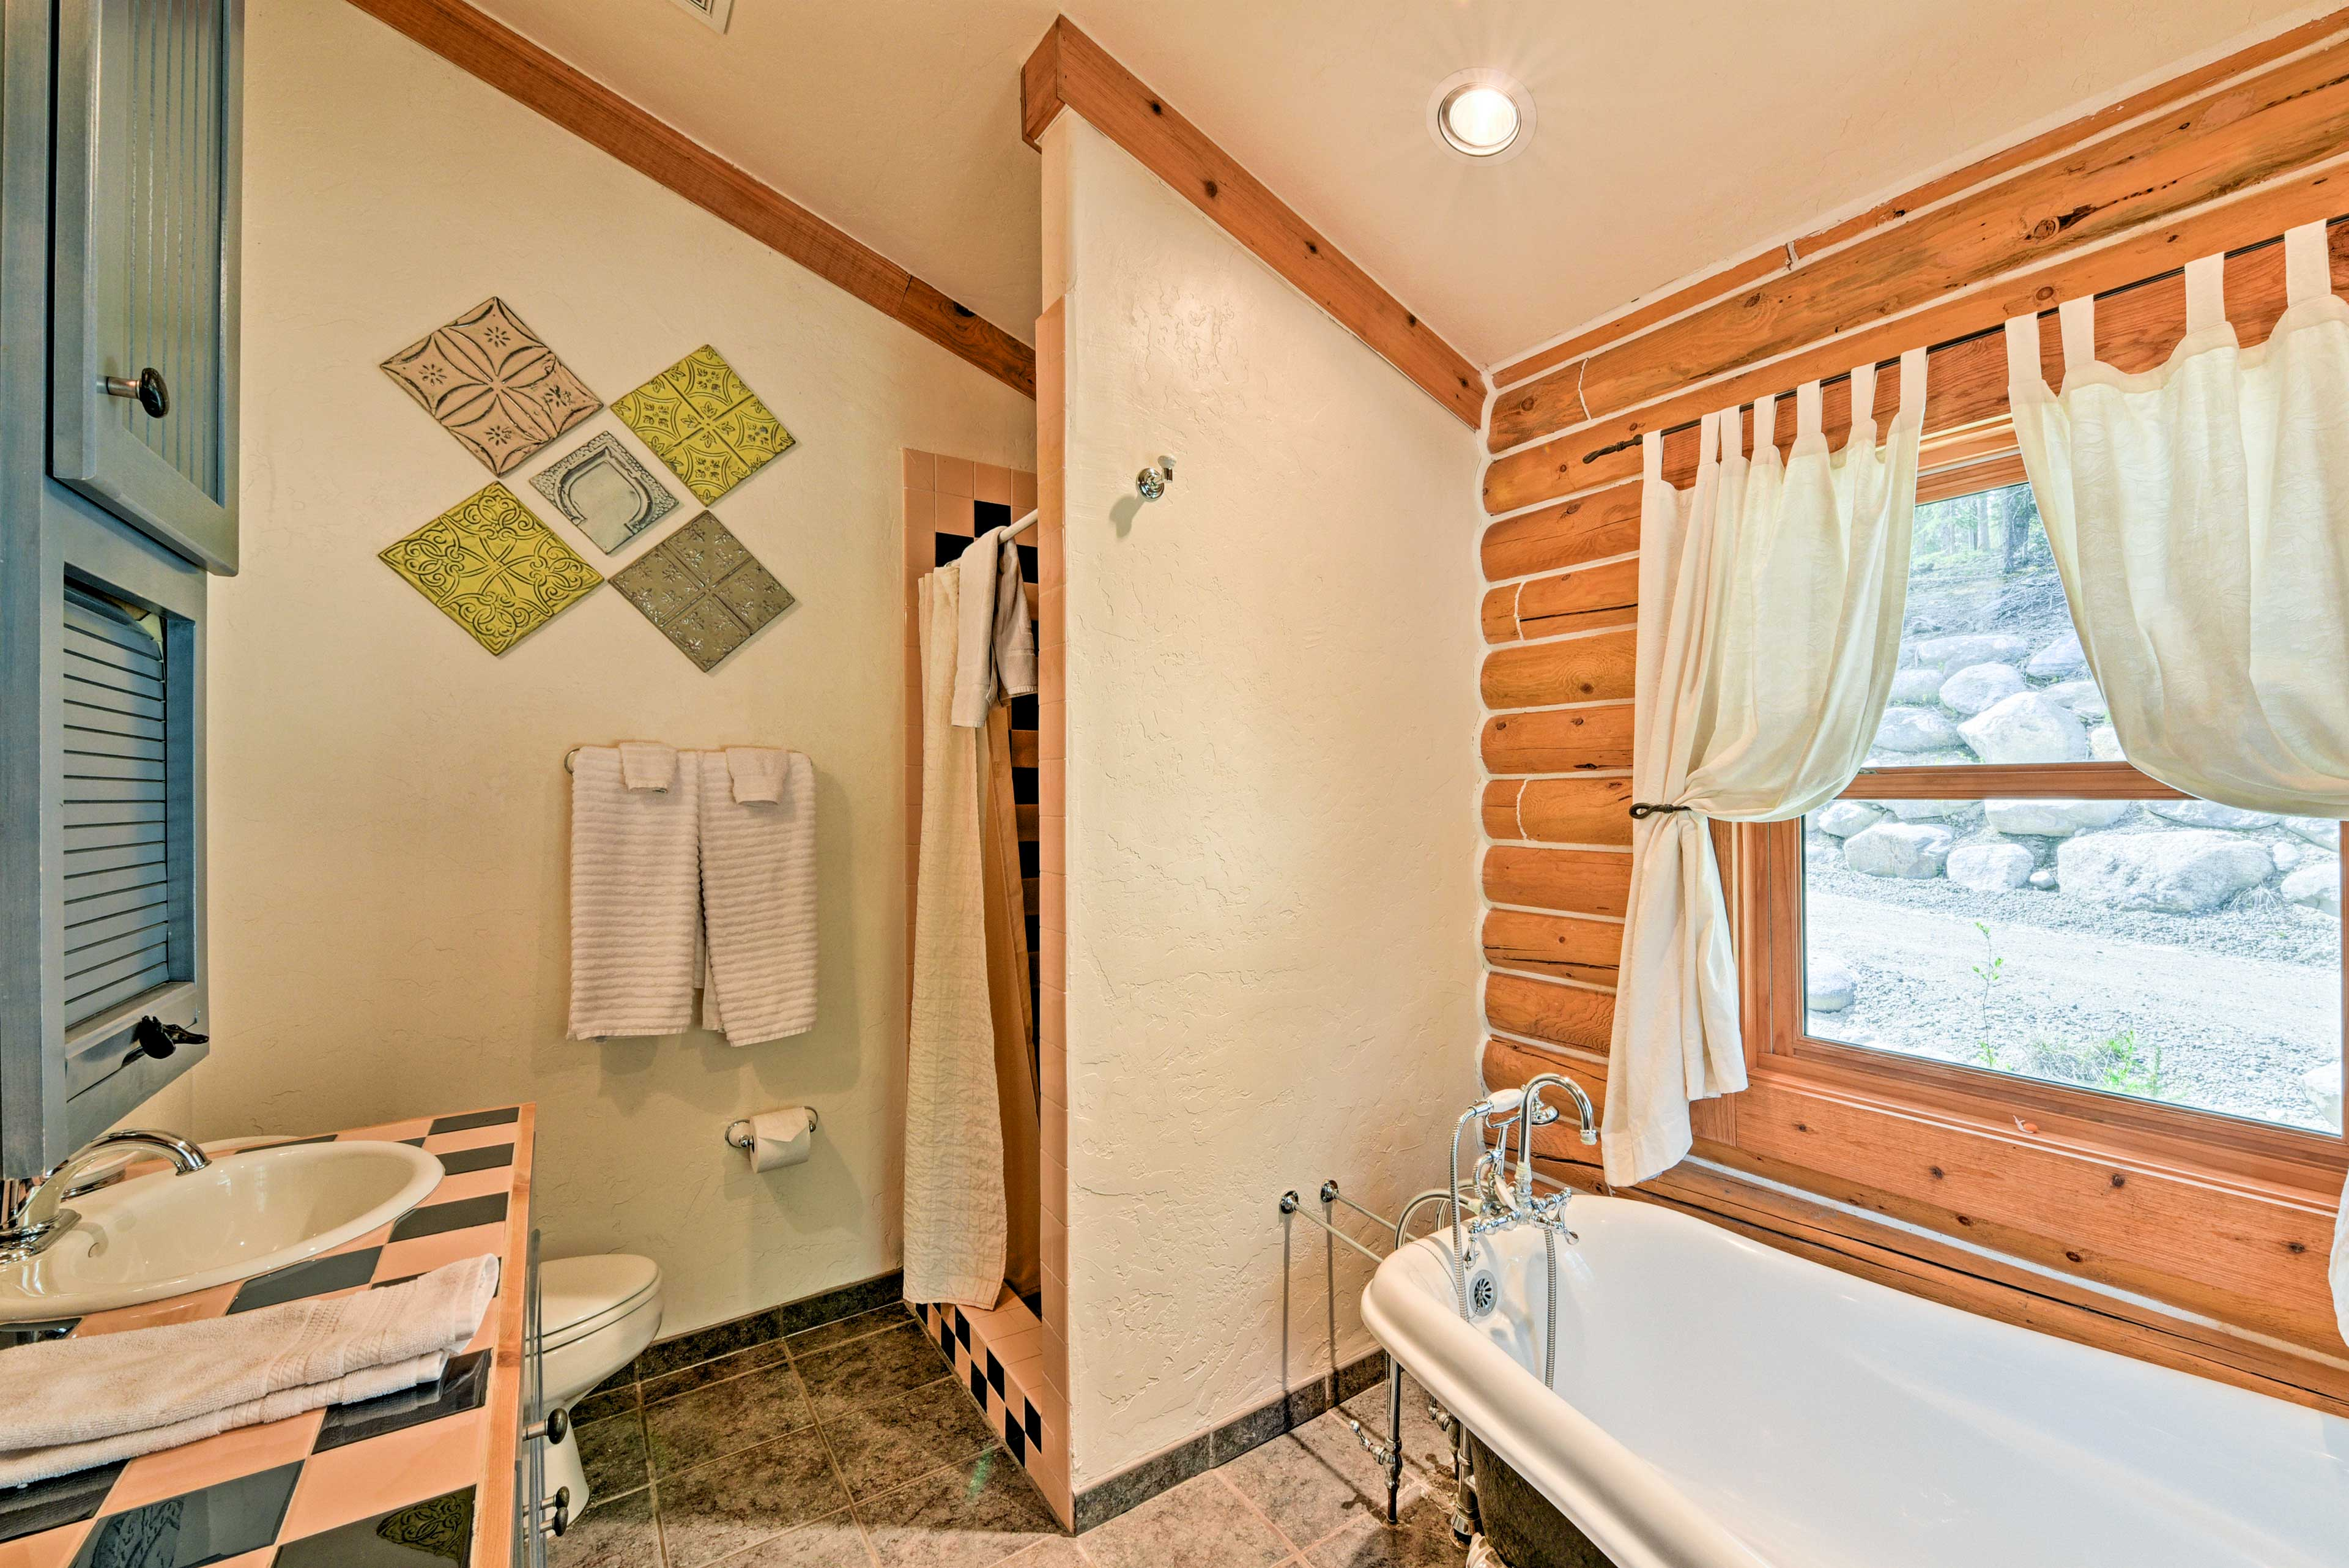 Choose between a bath or shower at the end of an active day.